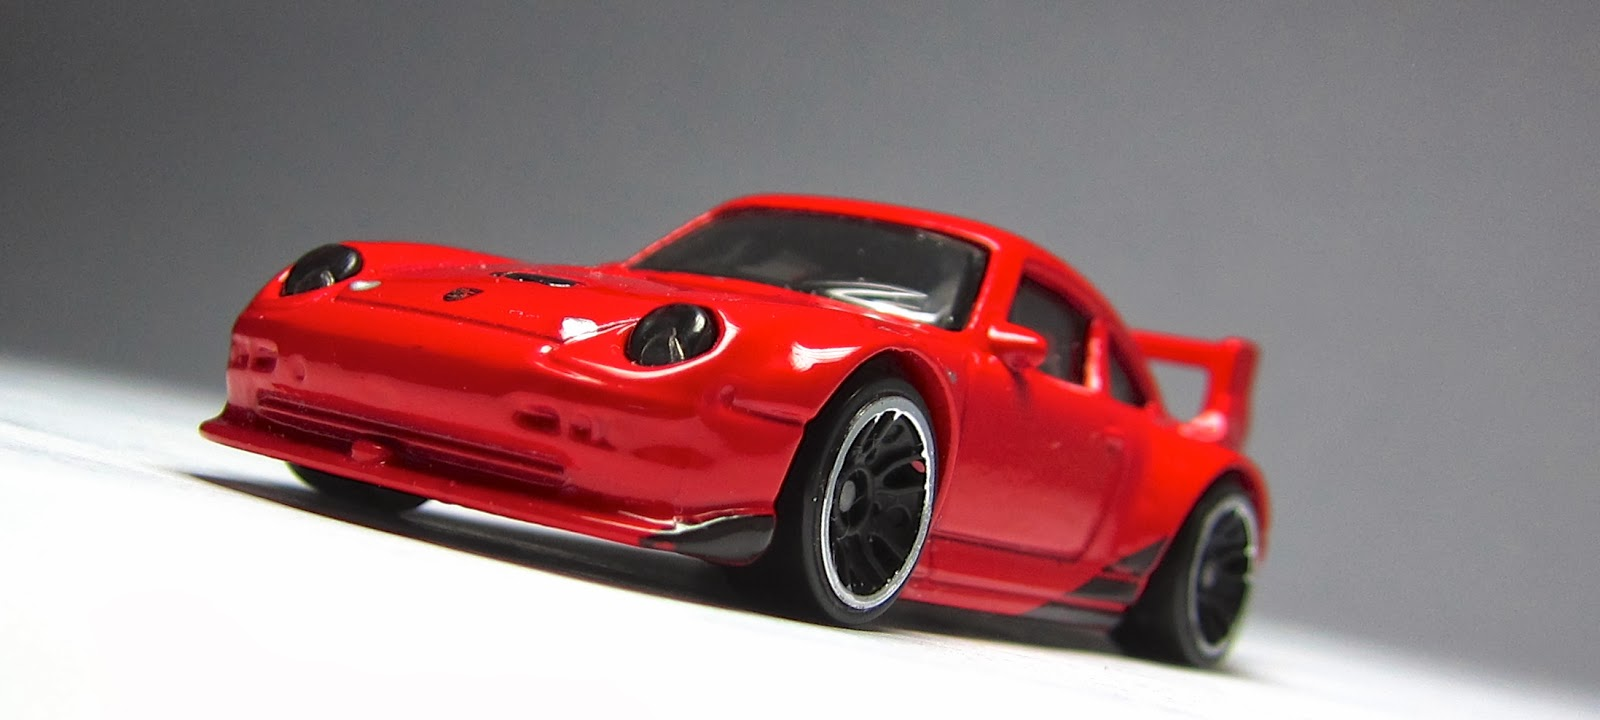 hot wheels porsche 911 gt2 red red porsche 911 gt2 hot wheels review by cgr garage youtube hot. Black Bedroom Furniture Sets. Home Design Ideas